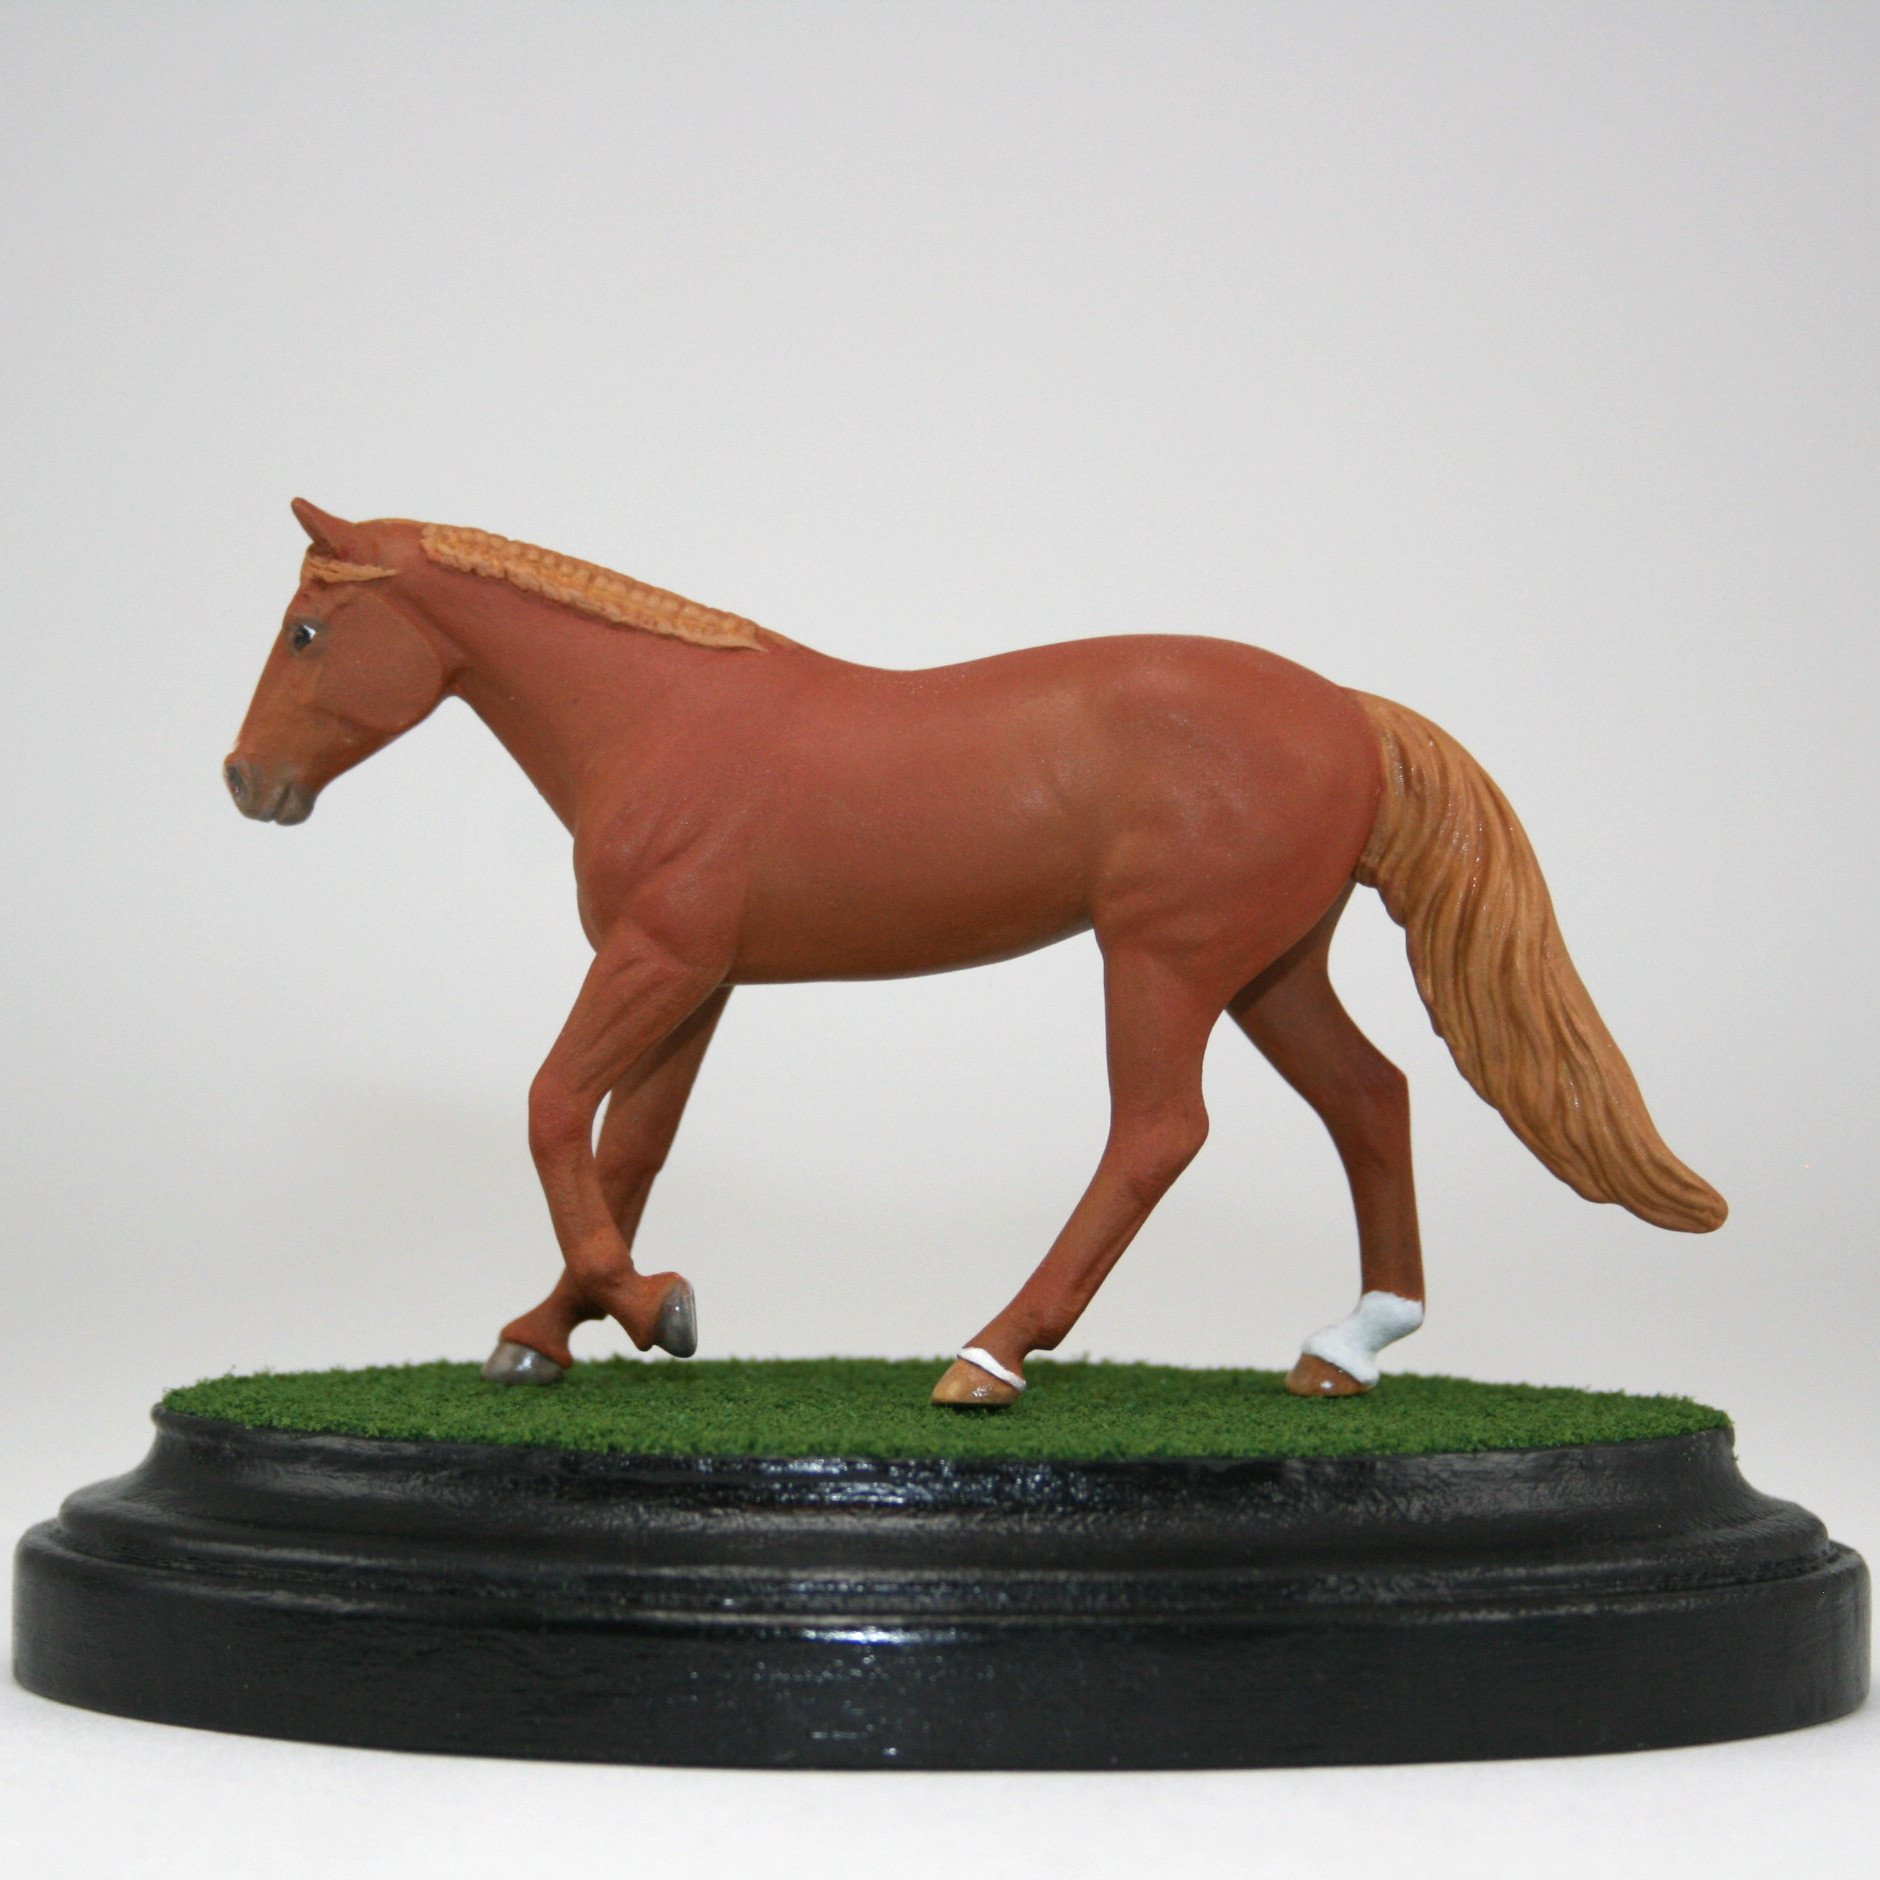 Model Horse Grass Display Base Breyer Stablemate Scale Oval 3 5 Martha Net